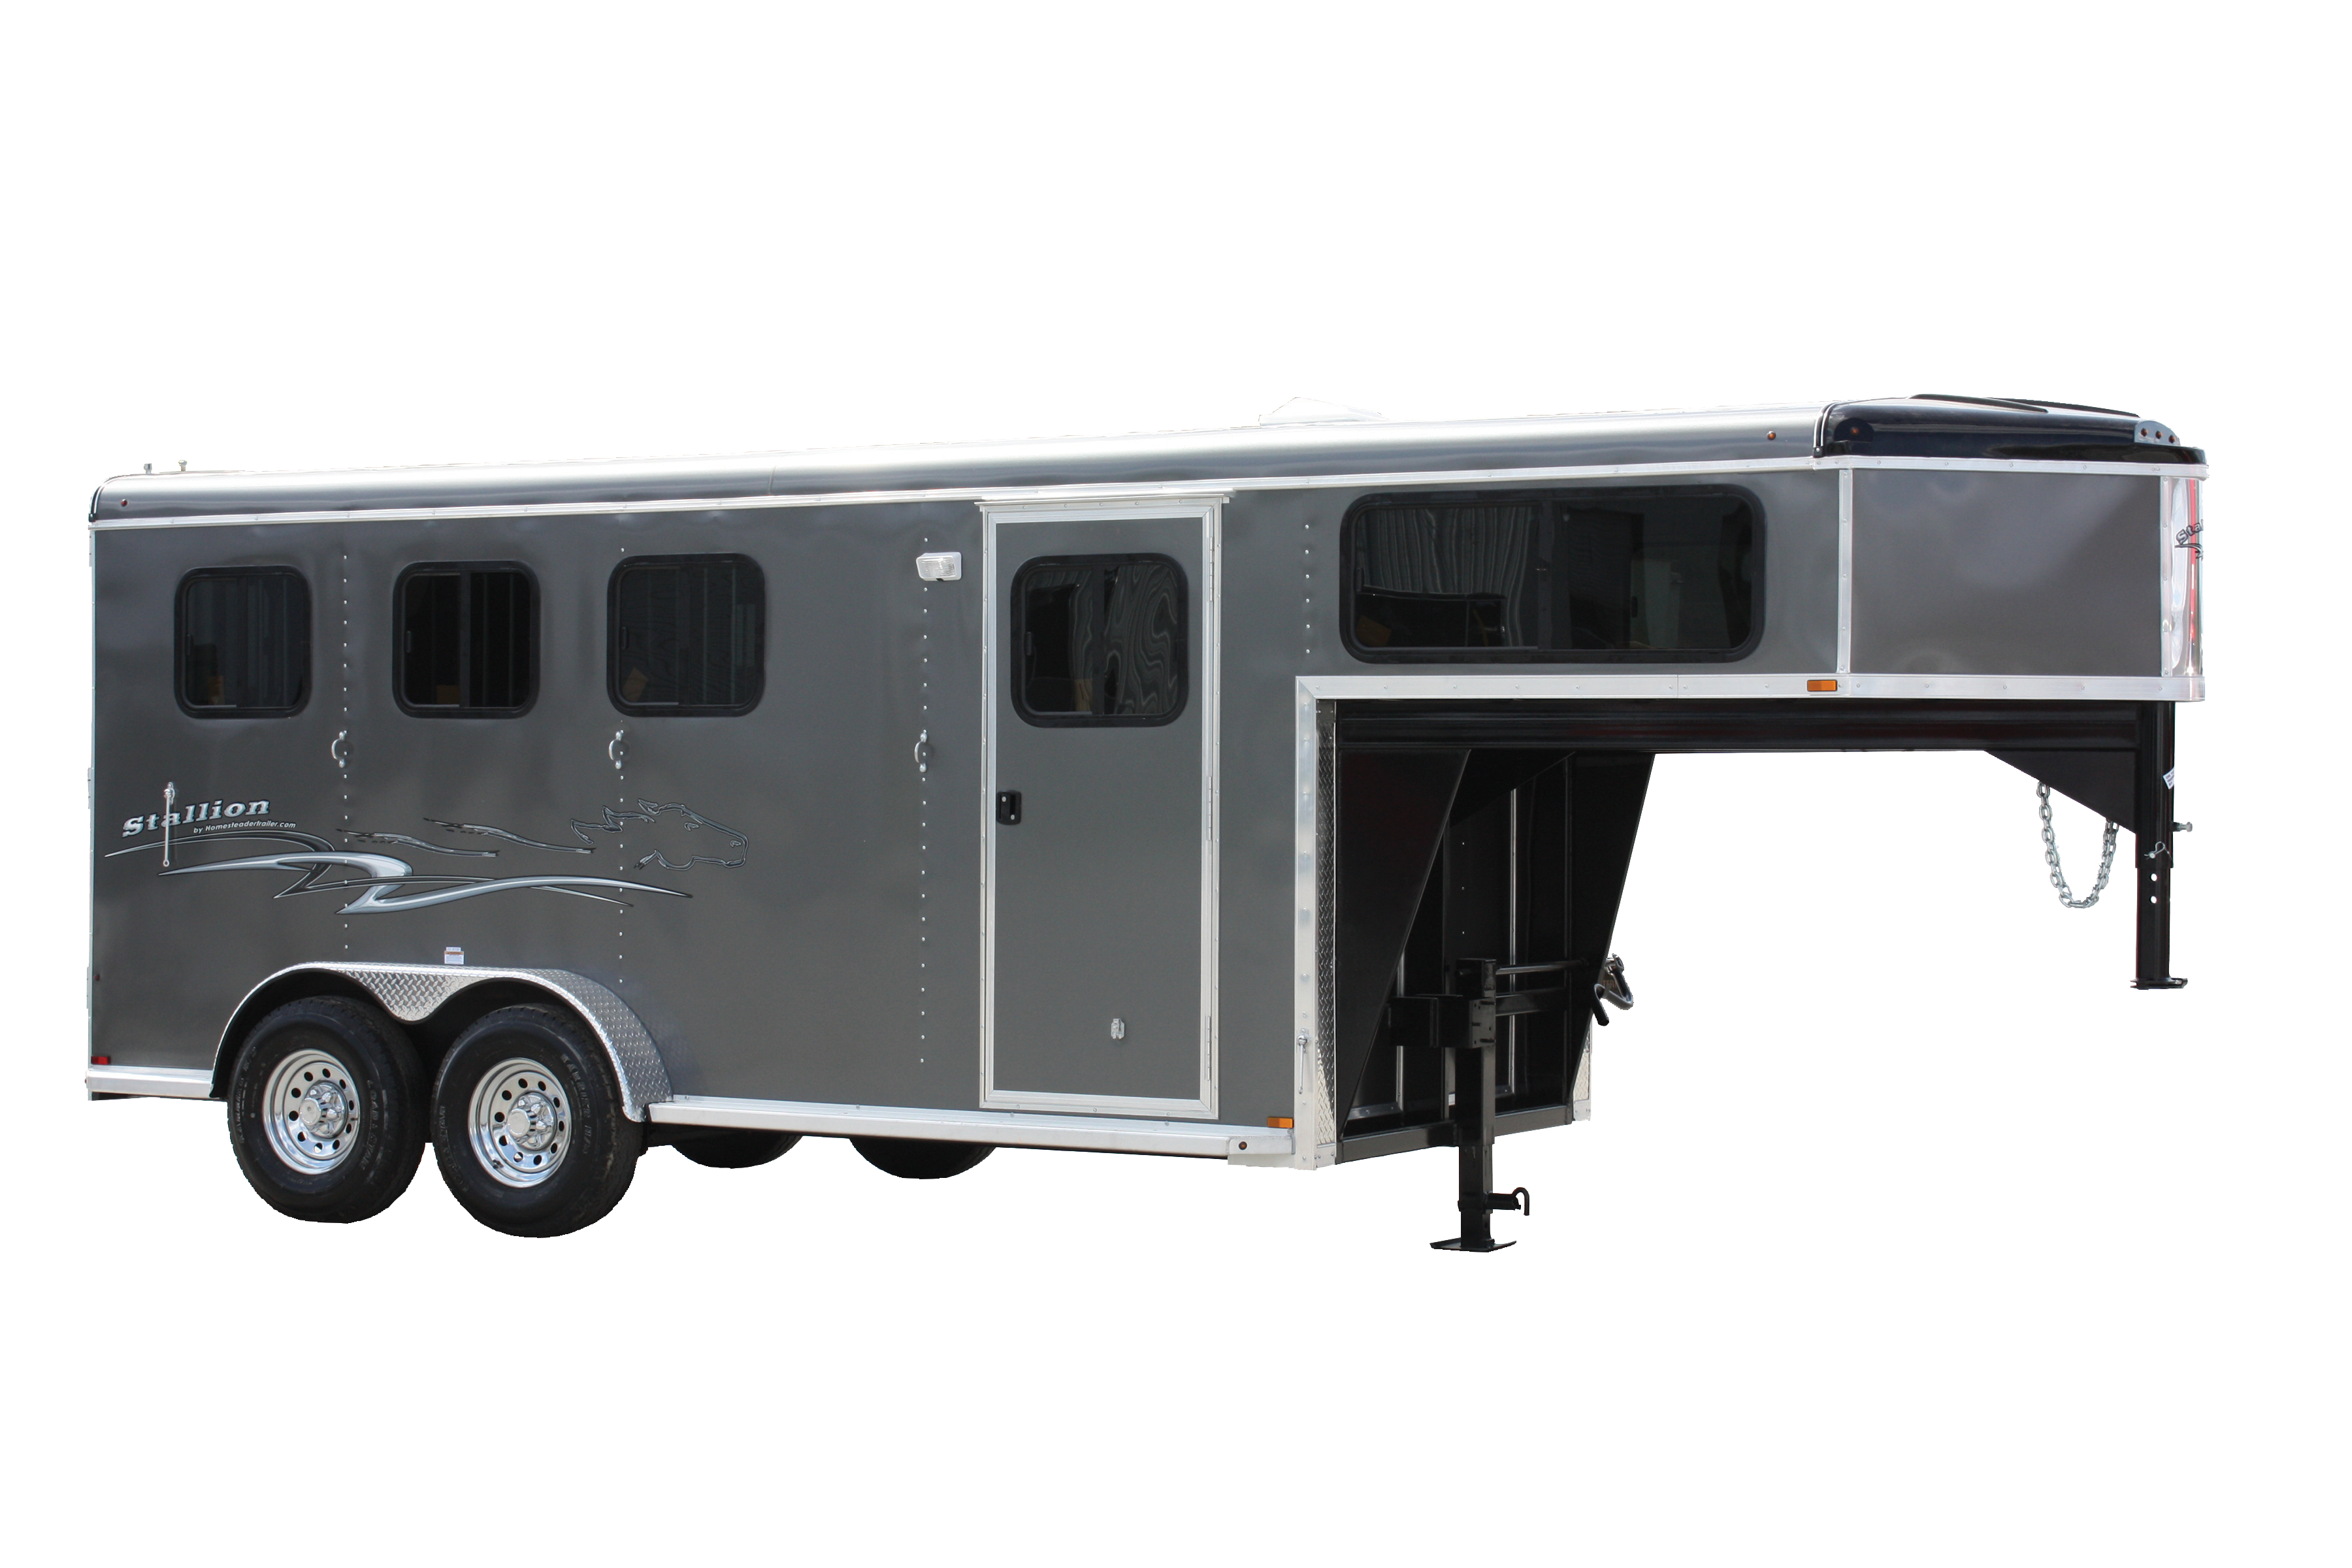 original gooseneck living kiefer awning trailer with horse rental awnings quarters trailers sales valley elk and